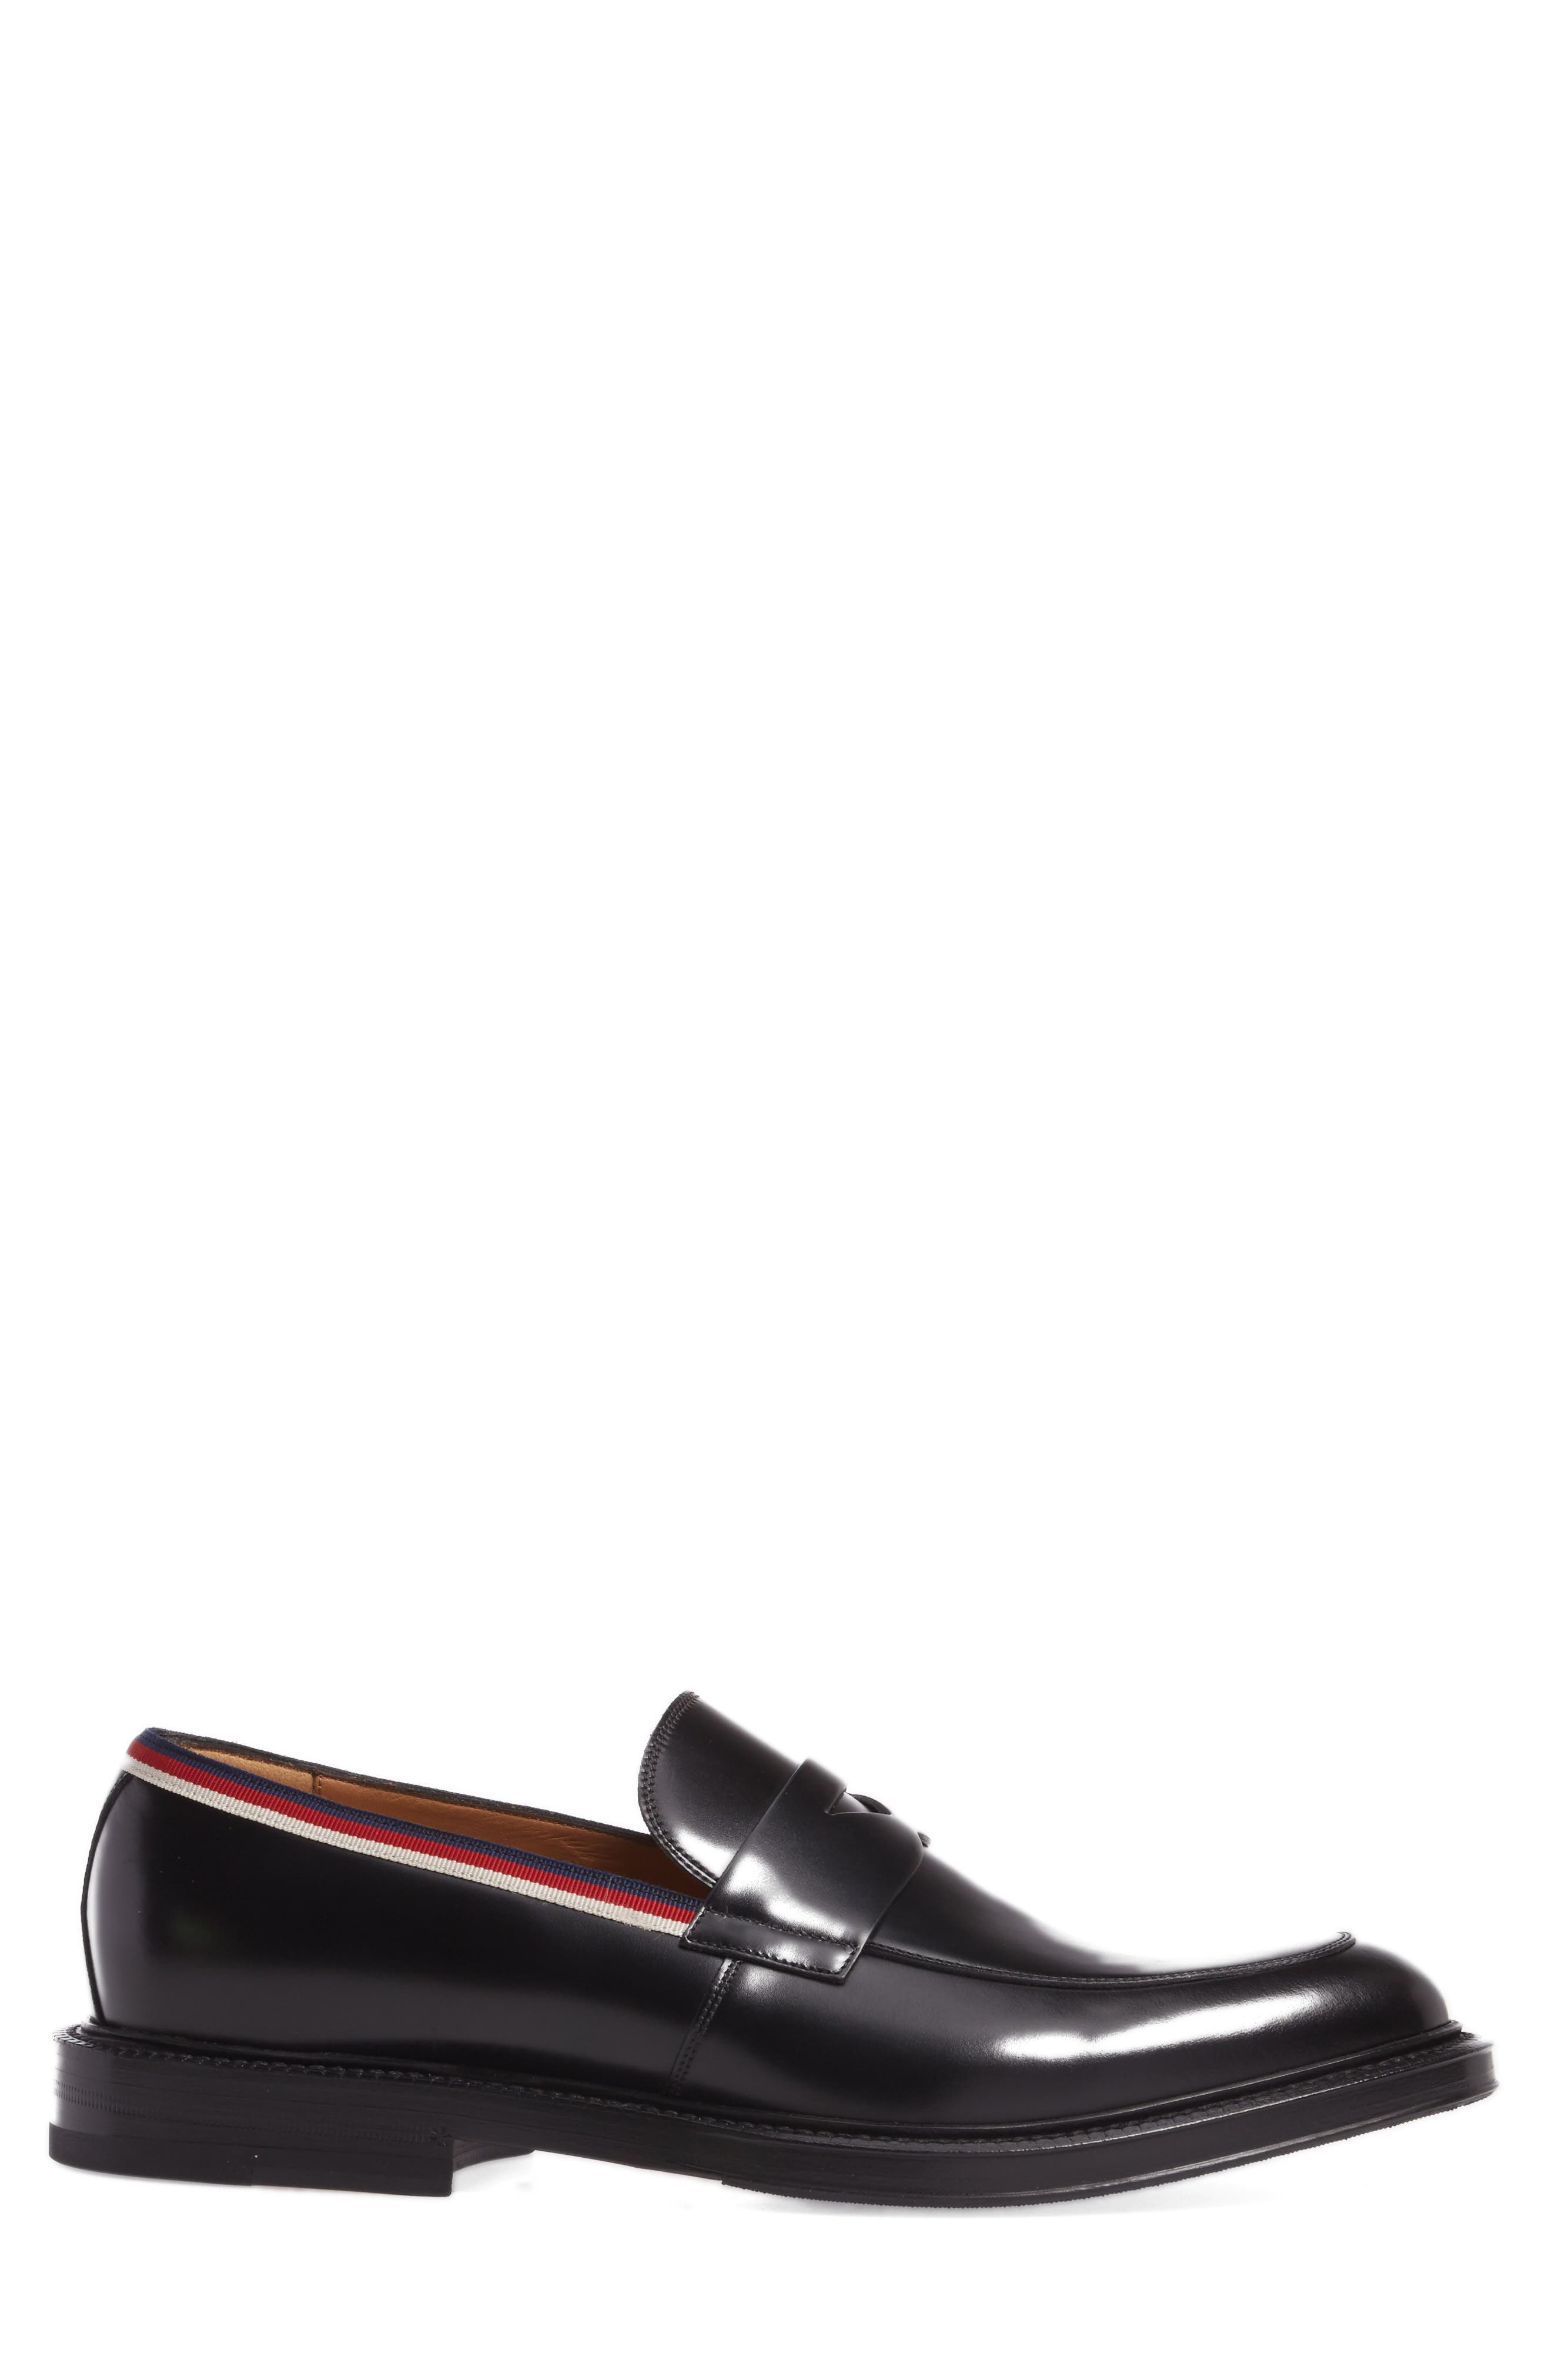 Beyond Penny Loafer,                             Alternate thumbnail 3, color,                             Black